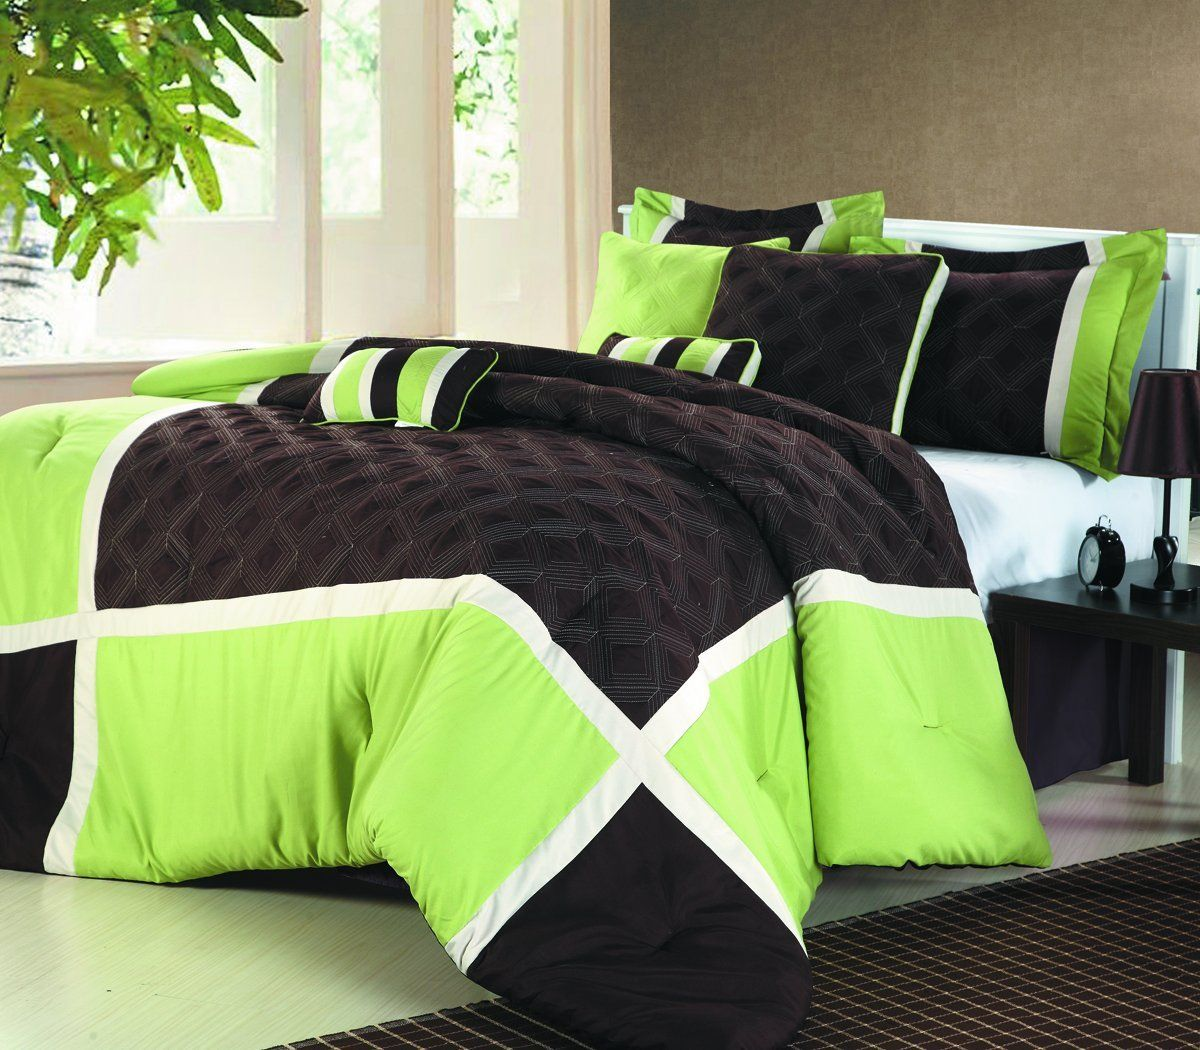 lime green and black bedding  sweetest slumber  my new bedroom  - luxury home quincy green comforter set